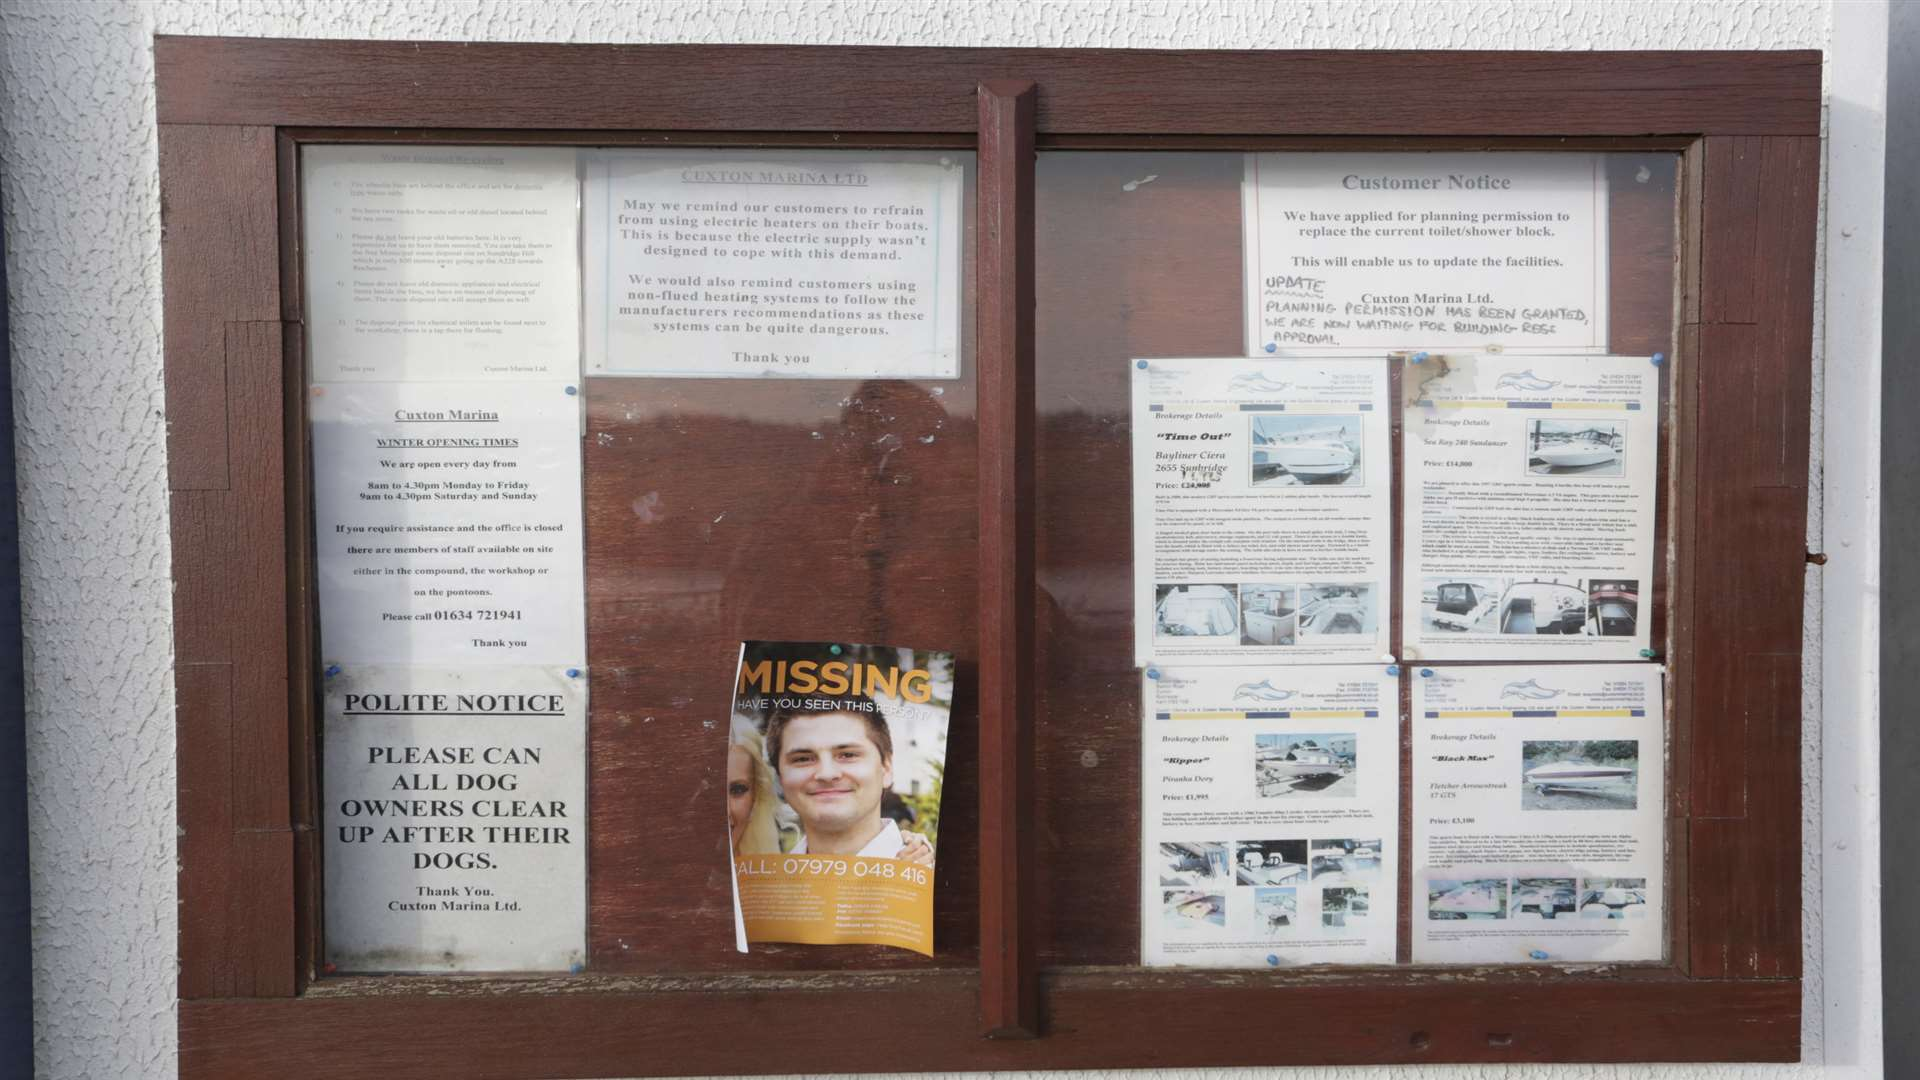 The noticeboard at Cuxton Marina displayed a poster appealing for information after Pat Lamb's disappearance.